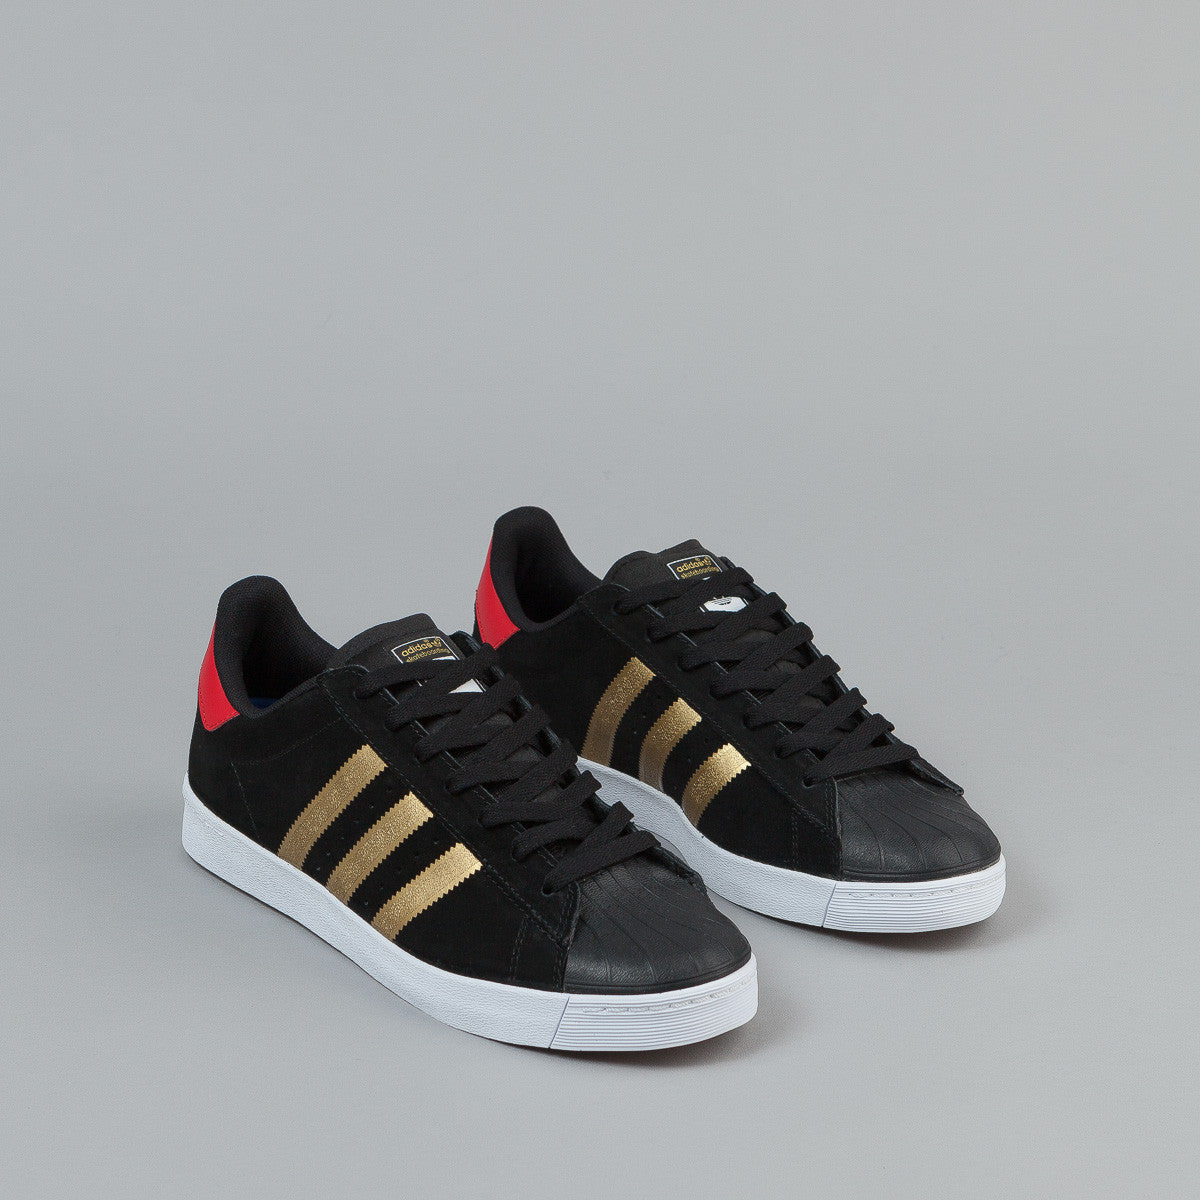 Superstar Vulc Adv Shoes Black